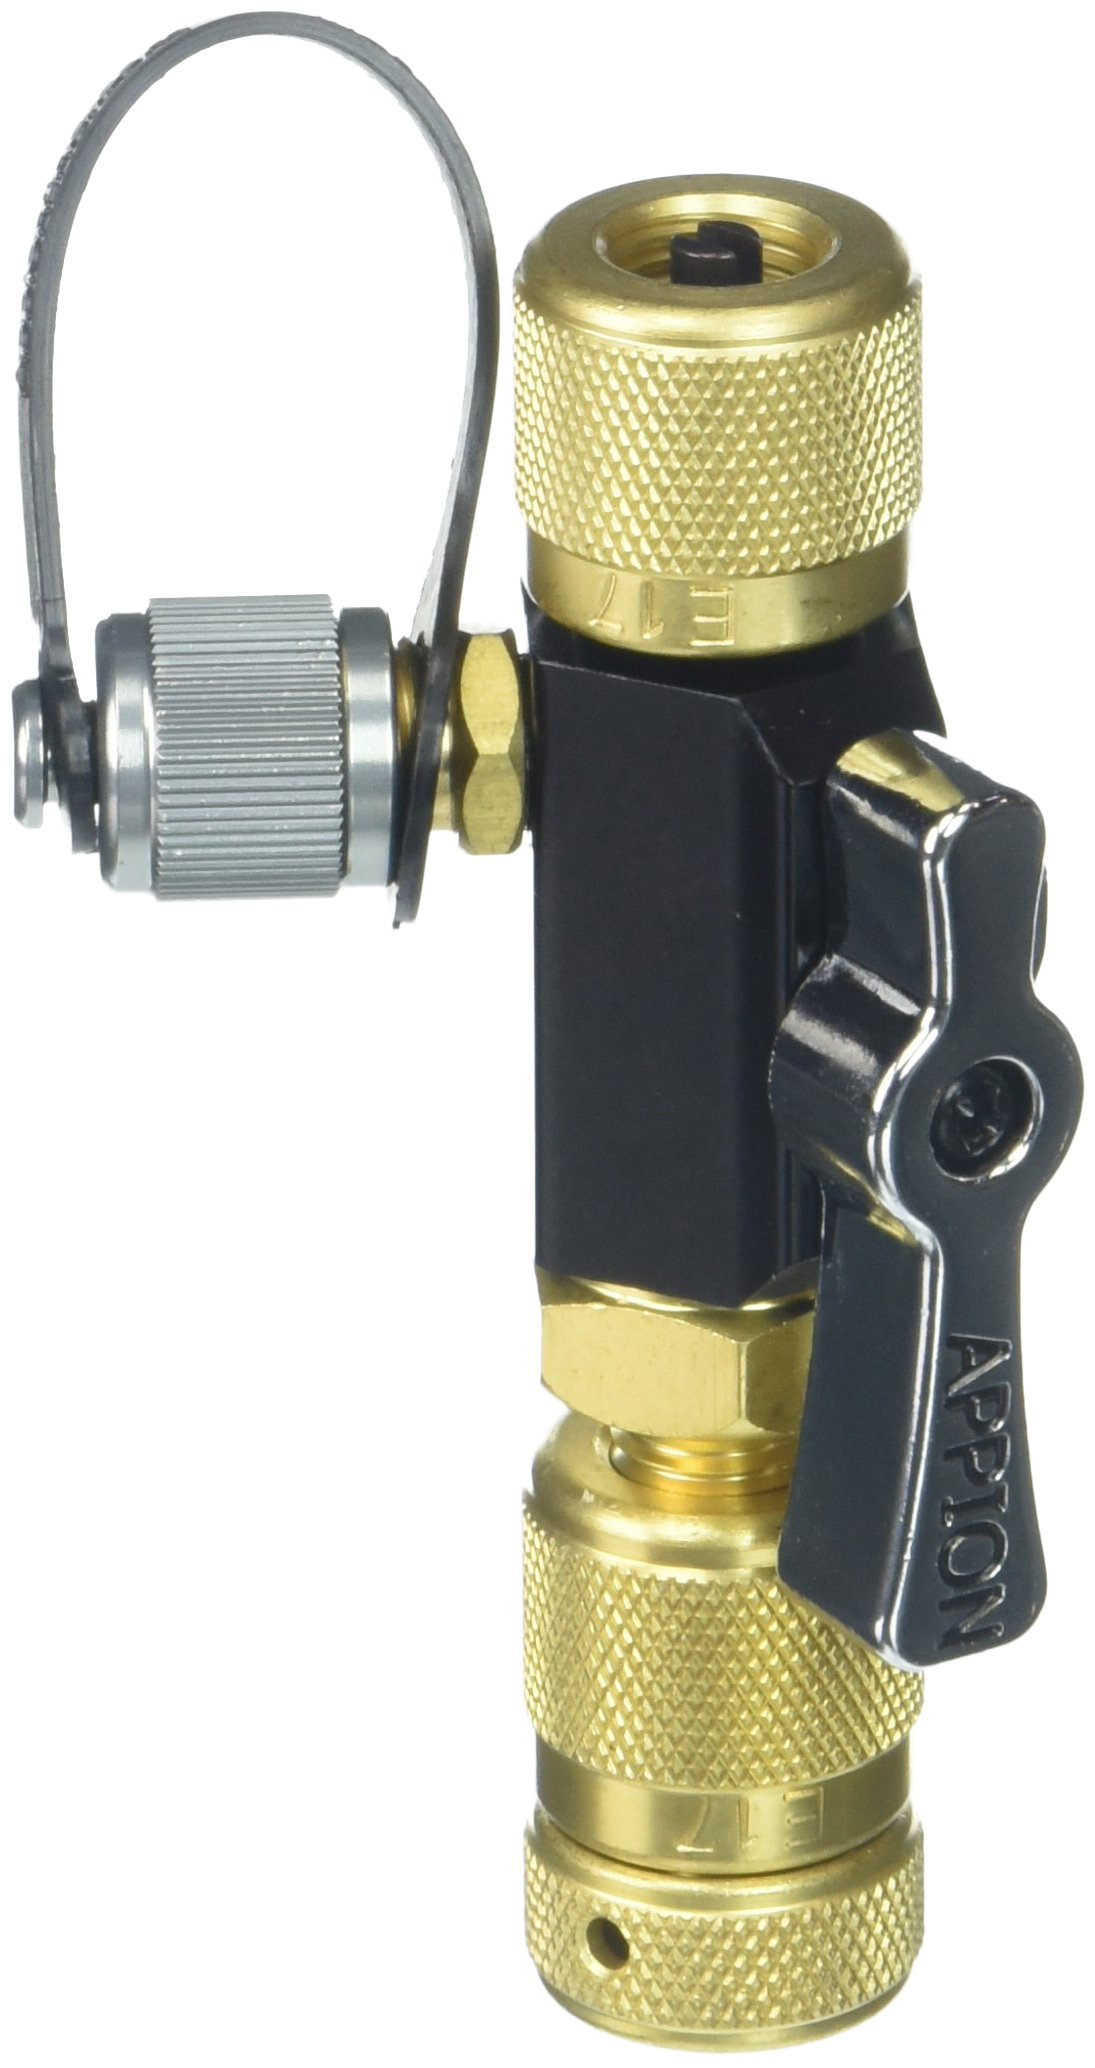 Appion MGAVCT Mega Flow Vacuum-Rated Valve Core Removal Tool, 1/4'' Connection, Black